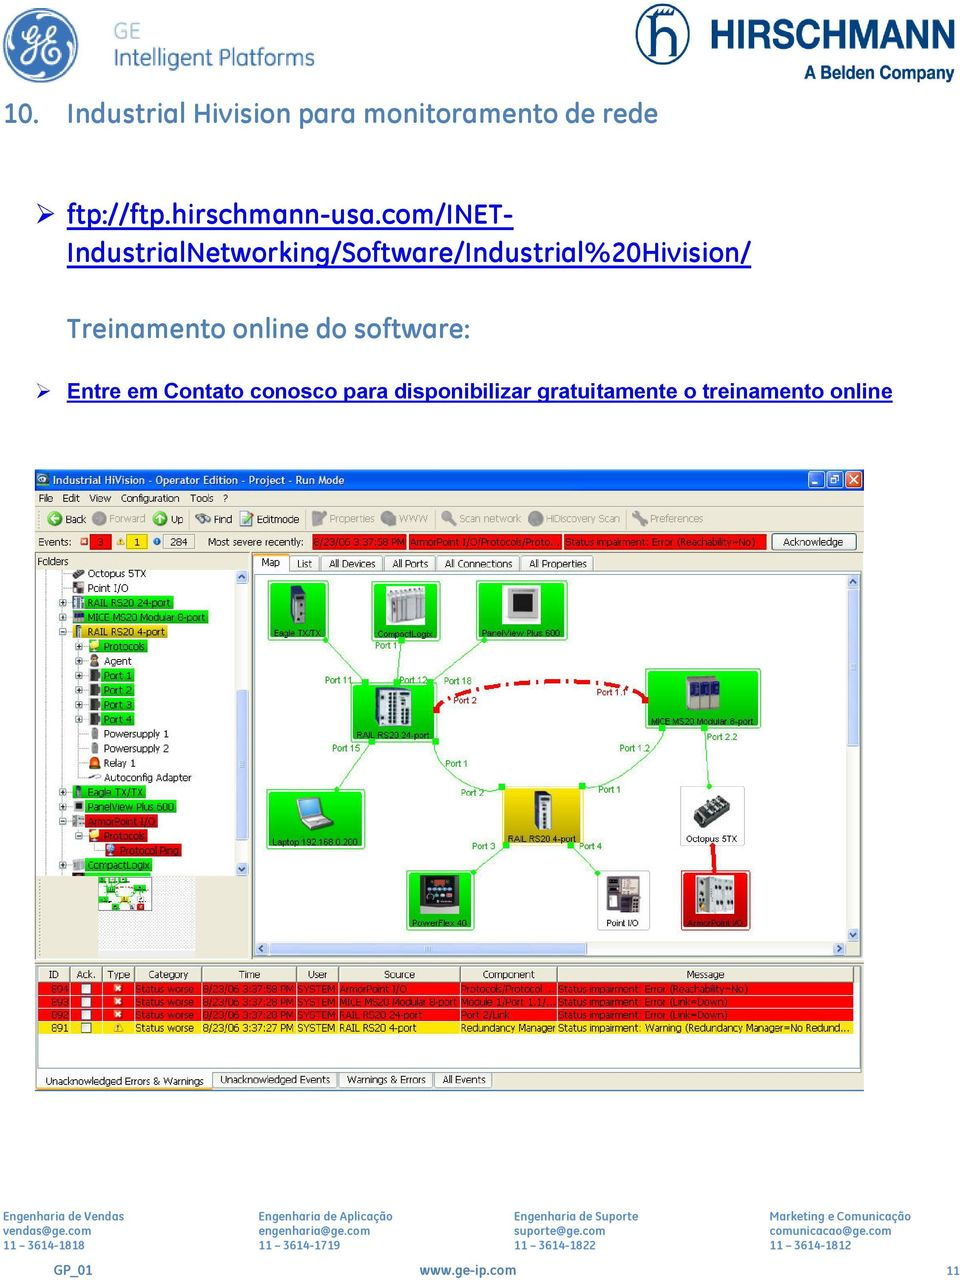 com/inet- IndustrialNetworking/Software/Industrial%20Hivision/